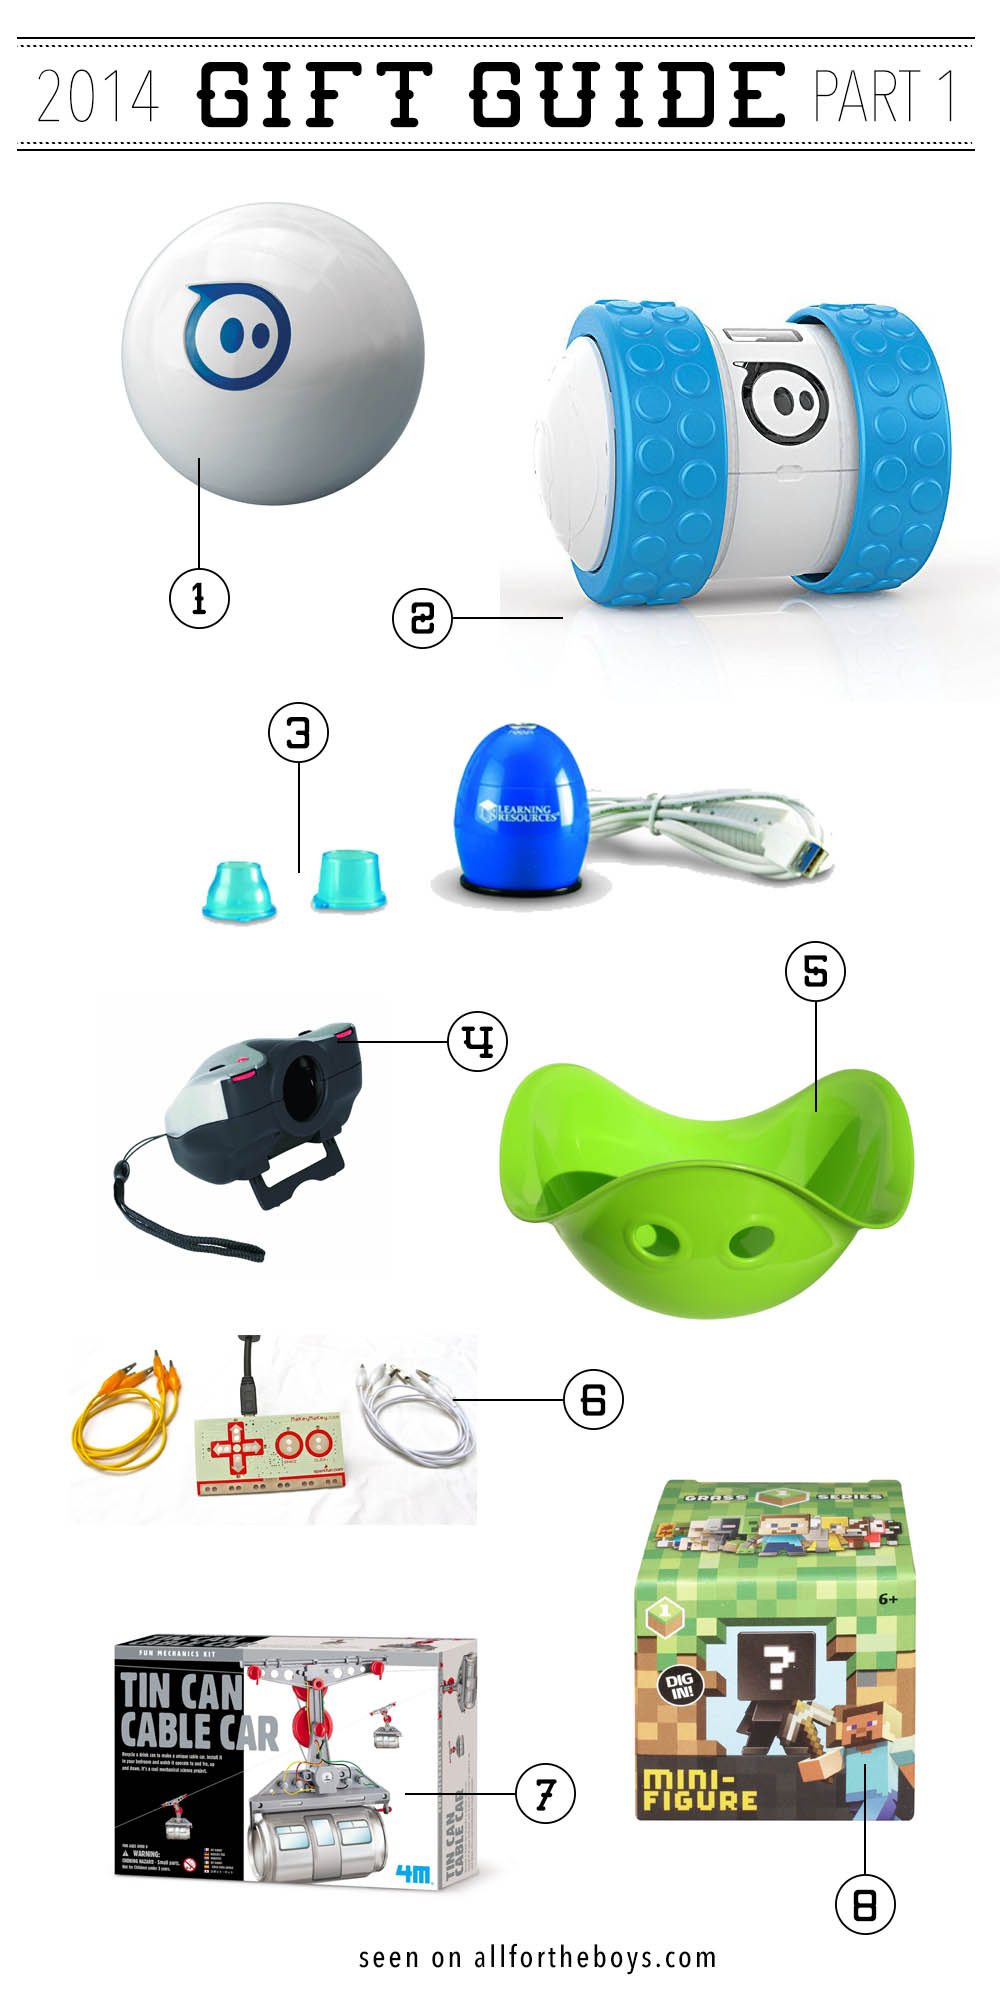 2014 gift guide from All for the Boys - some really unique ideas here!